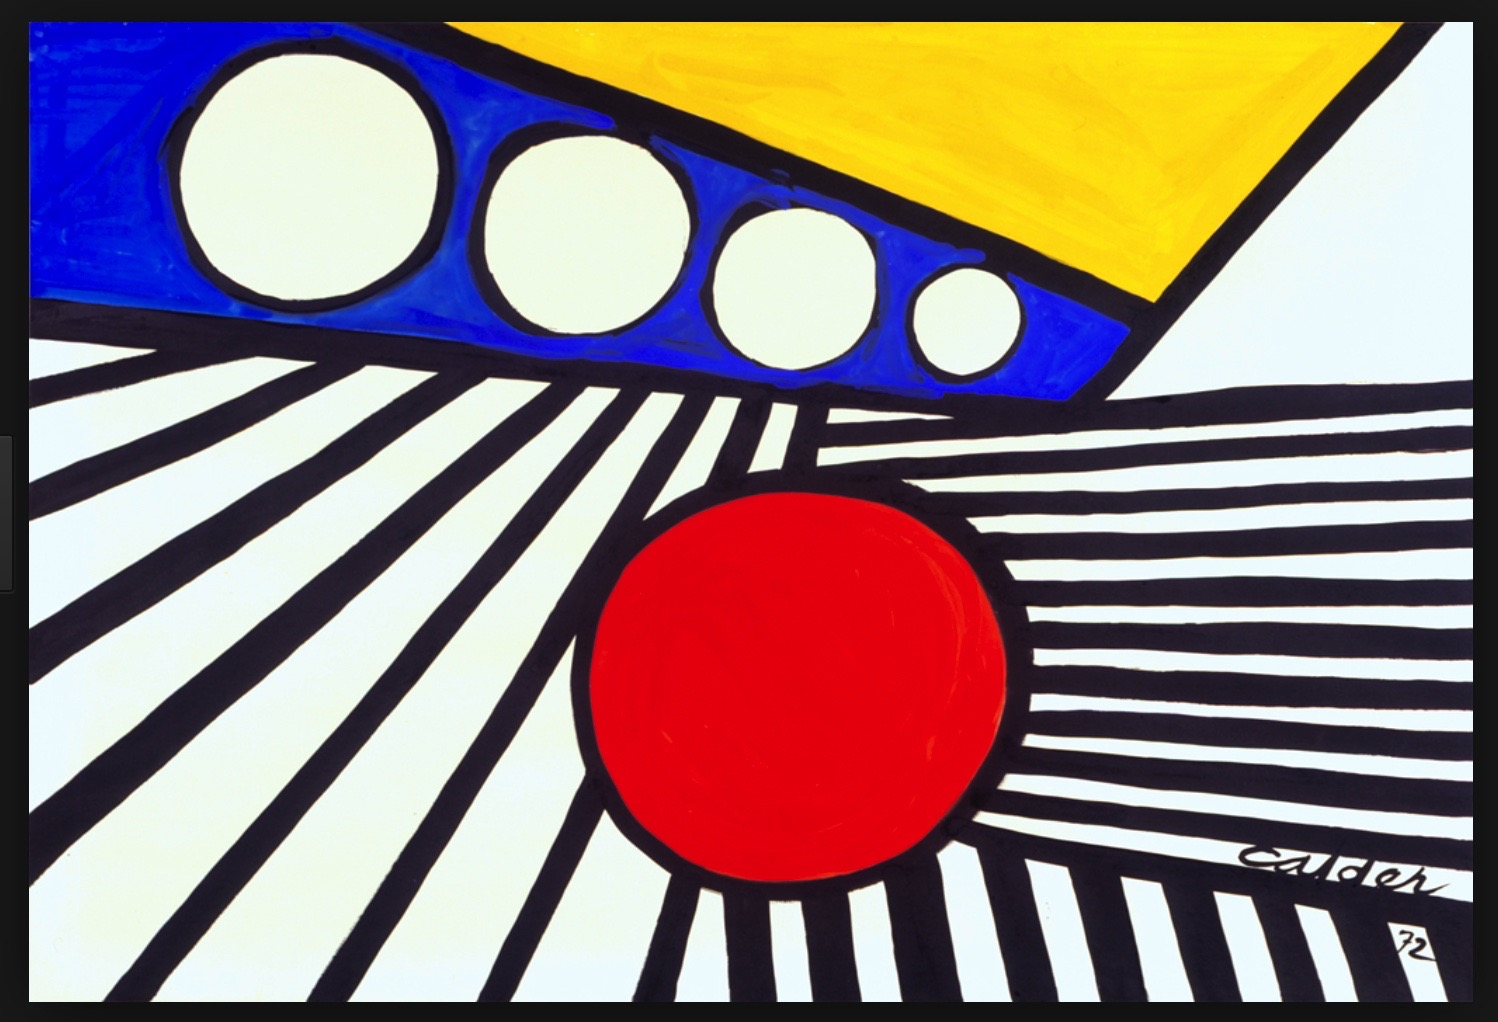 ALEXANDER CALDER BMW ART CAReric kim screenshot_870